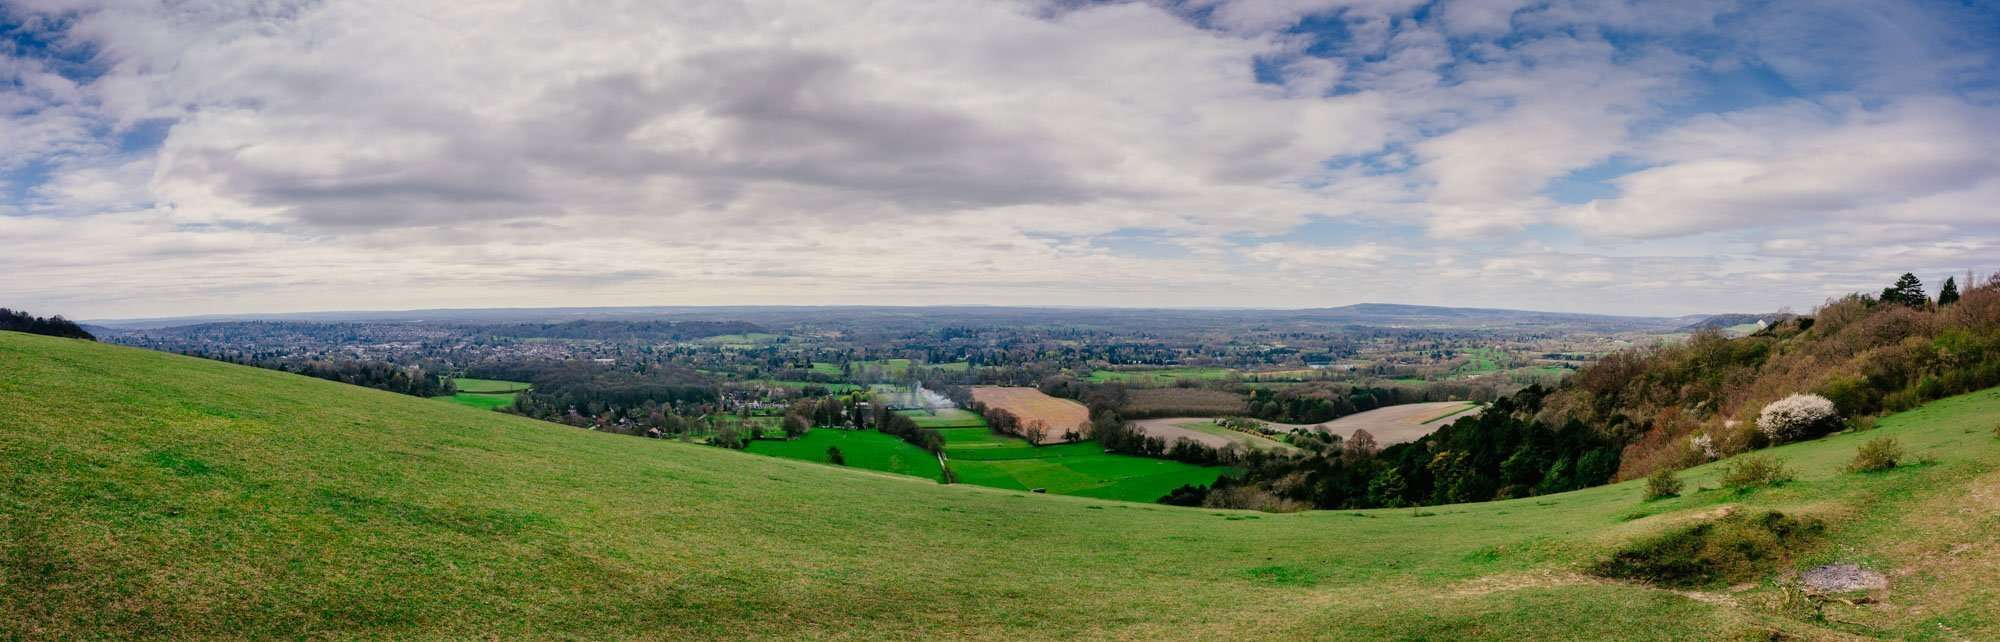 Merged photograph of the North Downs Surrey and Sussex